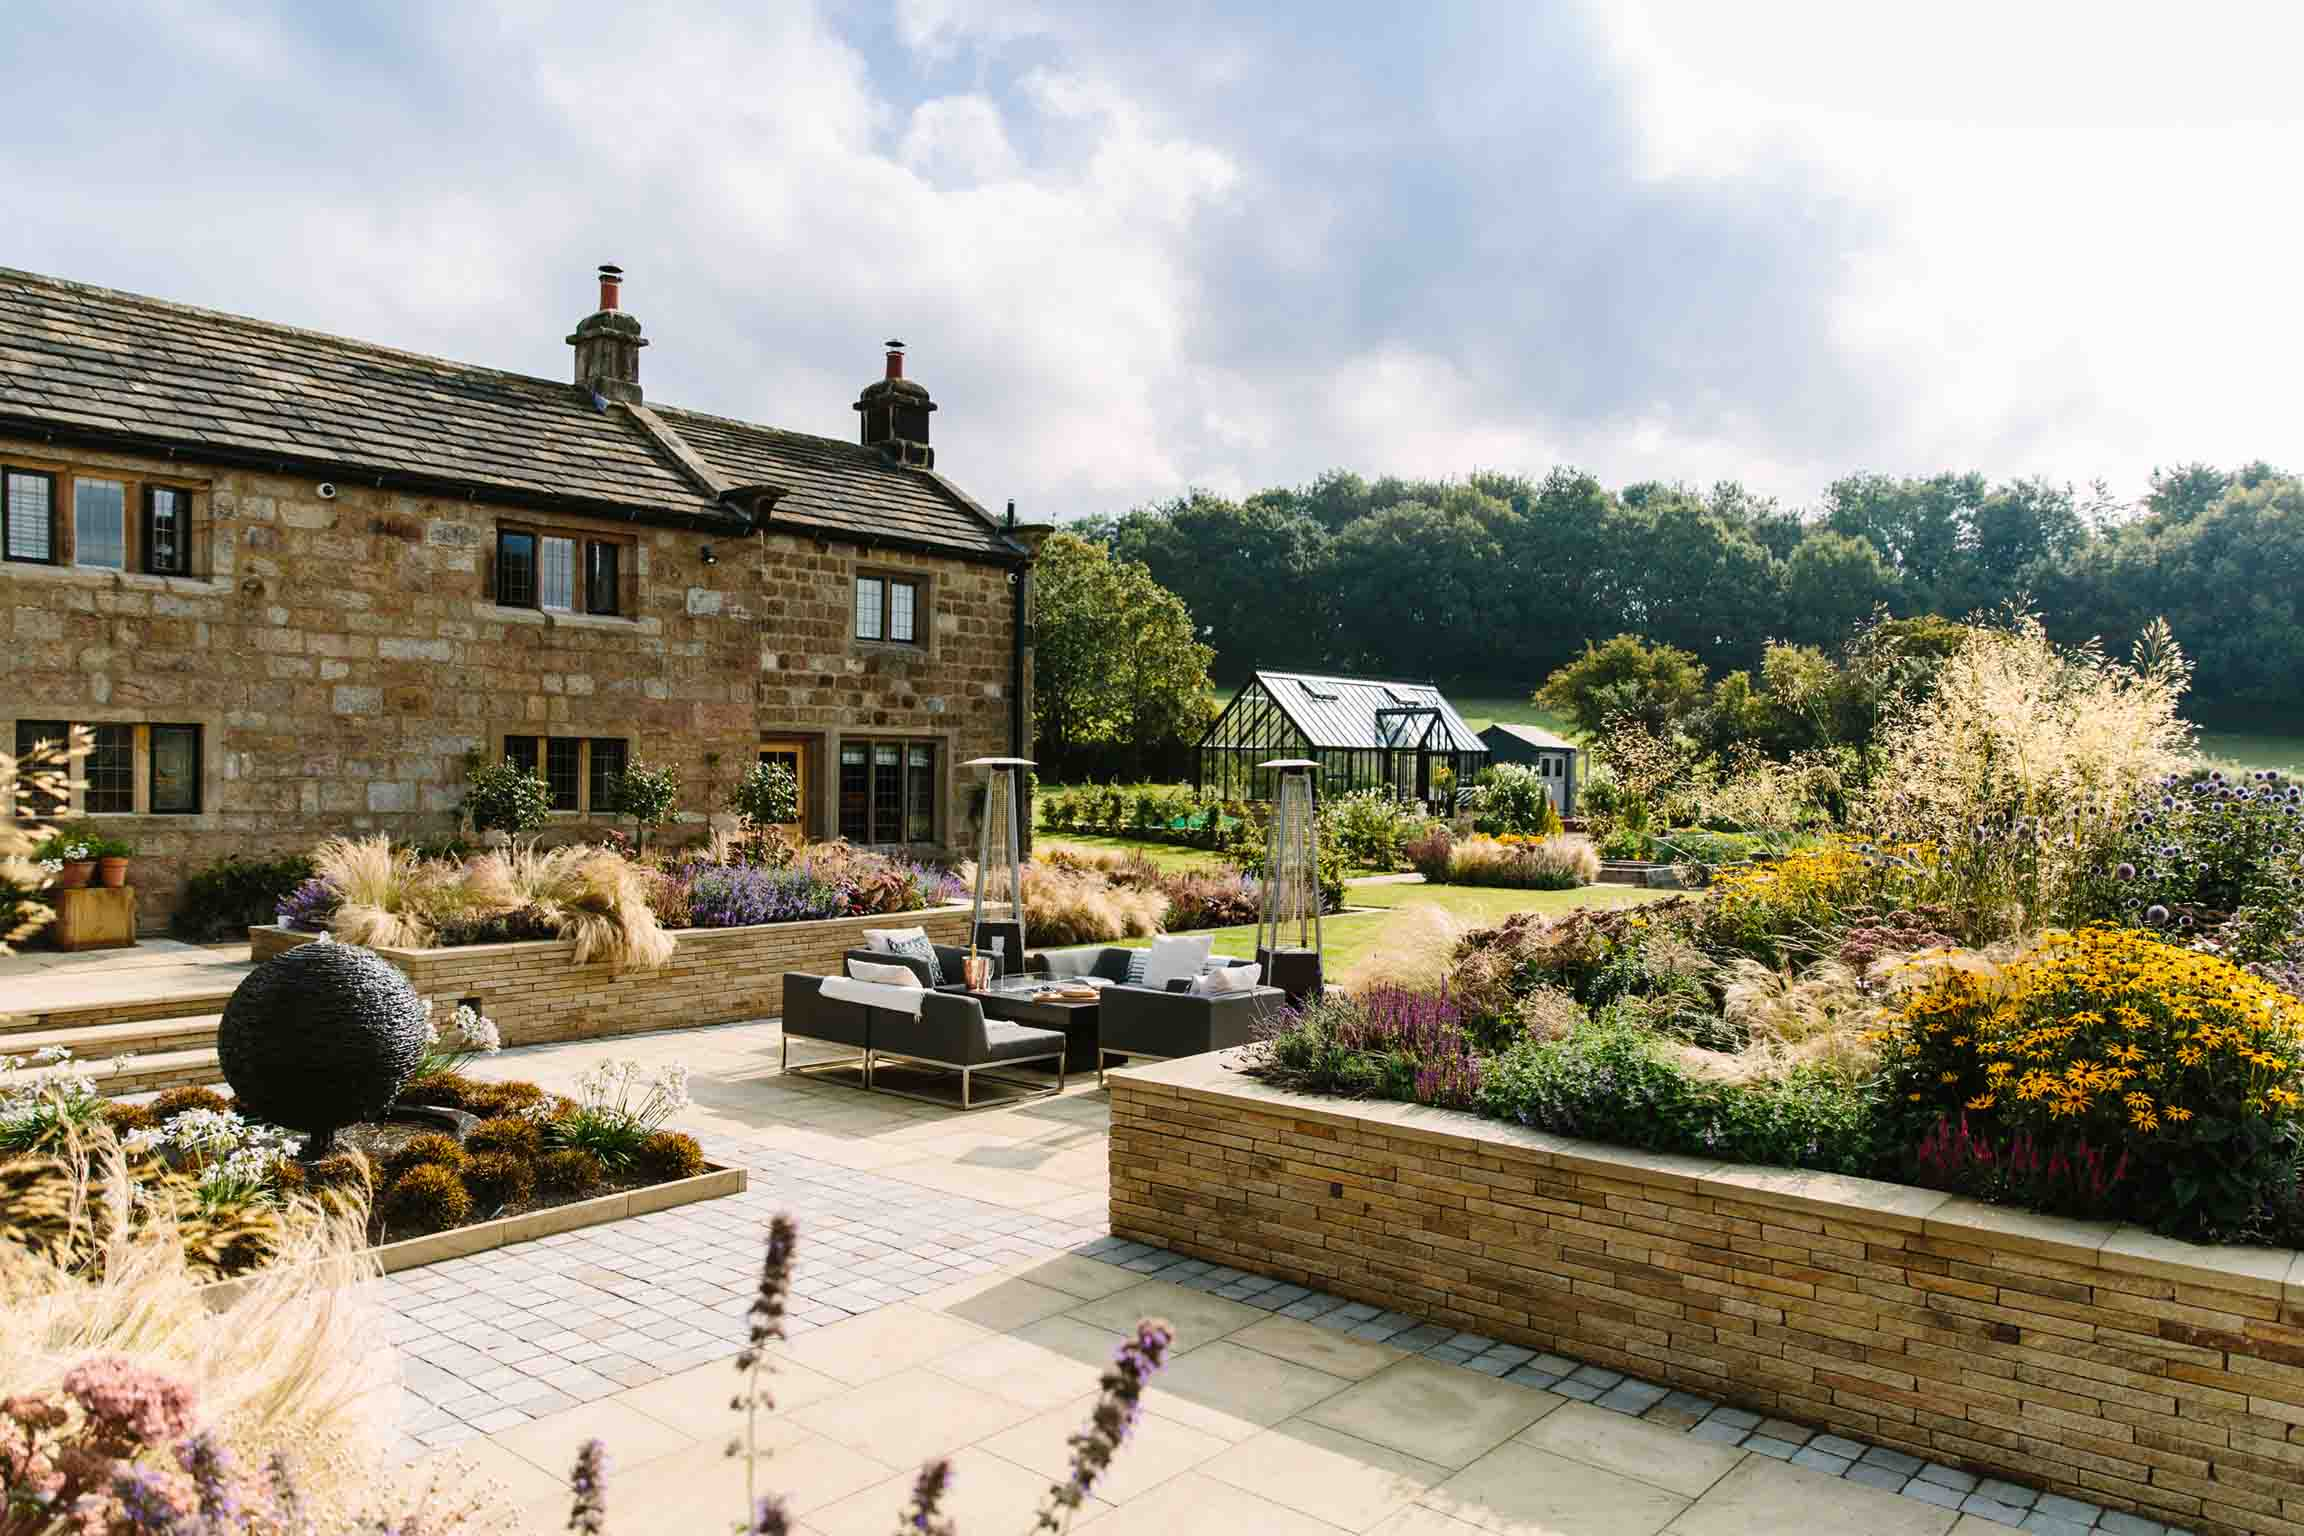 Country Garden-and-co-yorkshire-modern-planting-dutch-planting Terraced Garden bestall and co Beautiful Planting Planting Design Dry Stone Wall English country classic garden Kat Weatherill